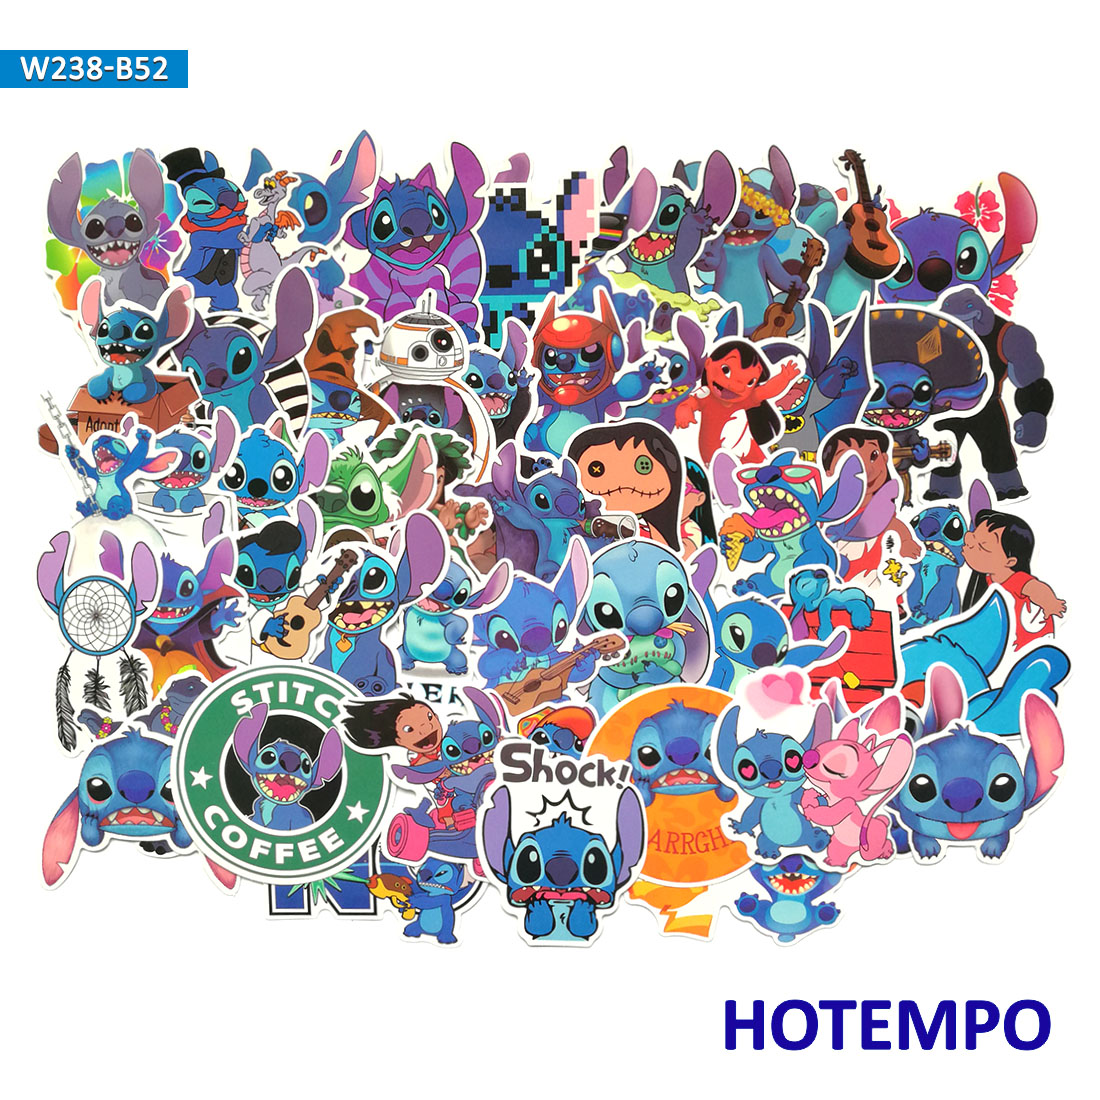 50pcs CuteLilo Stitch Anime Lovely Stickers for Kid Gift DIY Letter Diary Scrapbooking Stationery Pegatinas Phone Laptop Sticker(China)